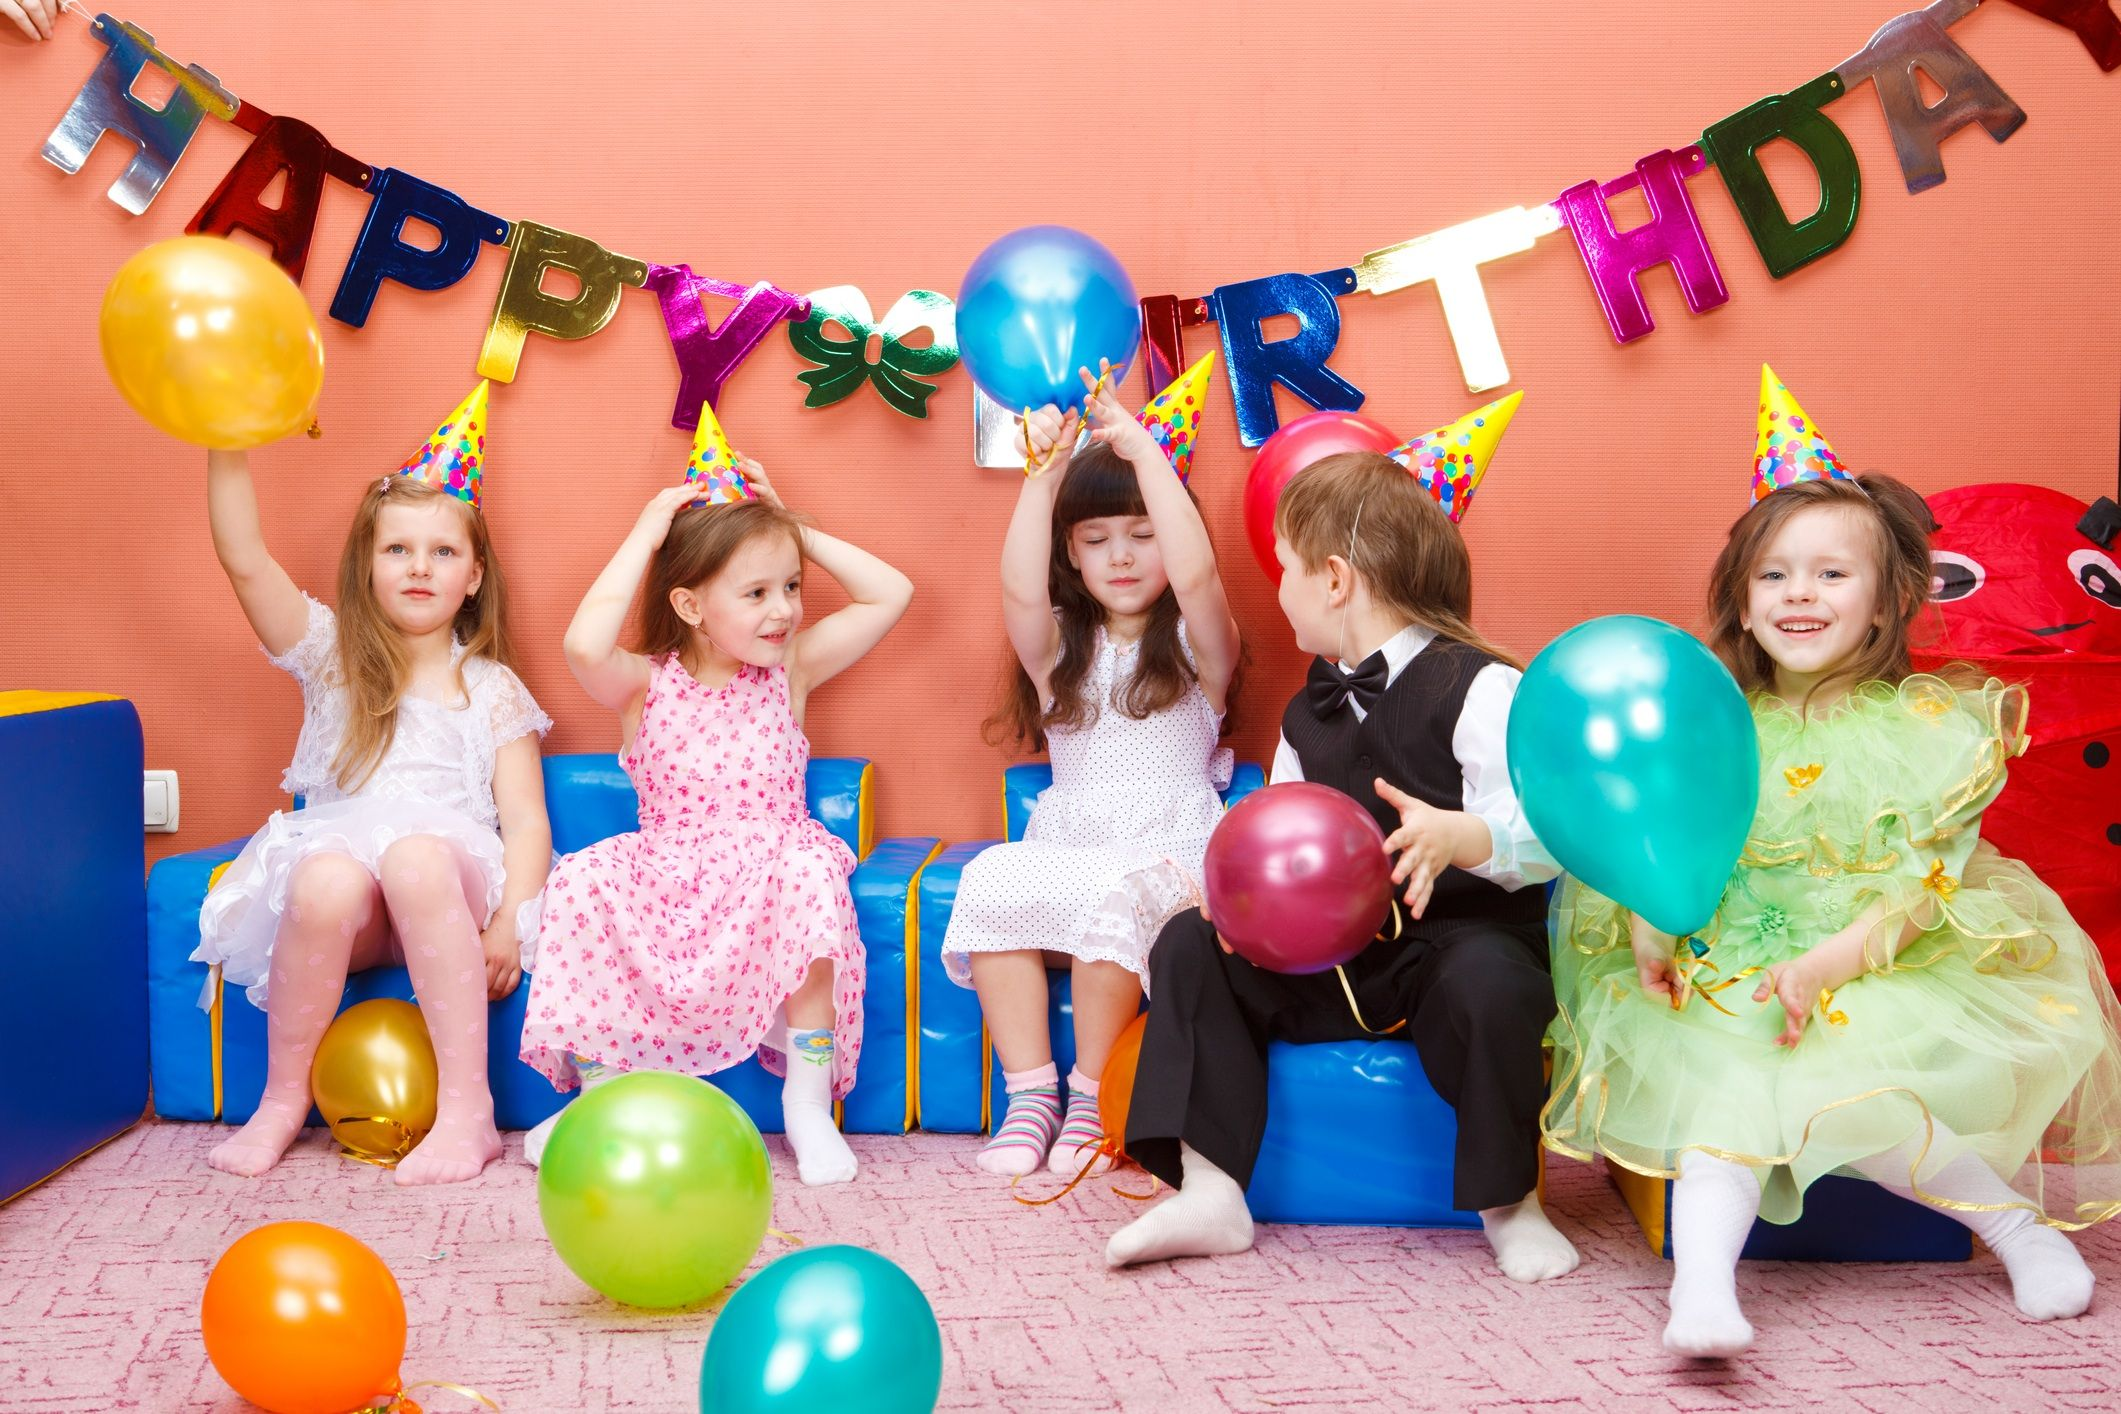 South Florida Rental Items Family Rentals Party Places For Kids Tween Birthday Party 12 Year Old Birthday Party Ideas